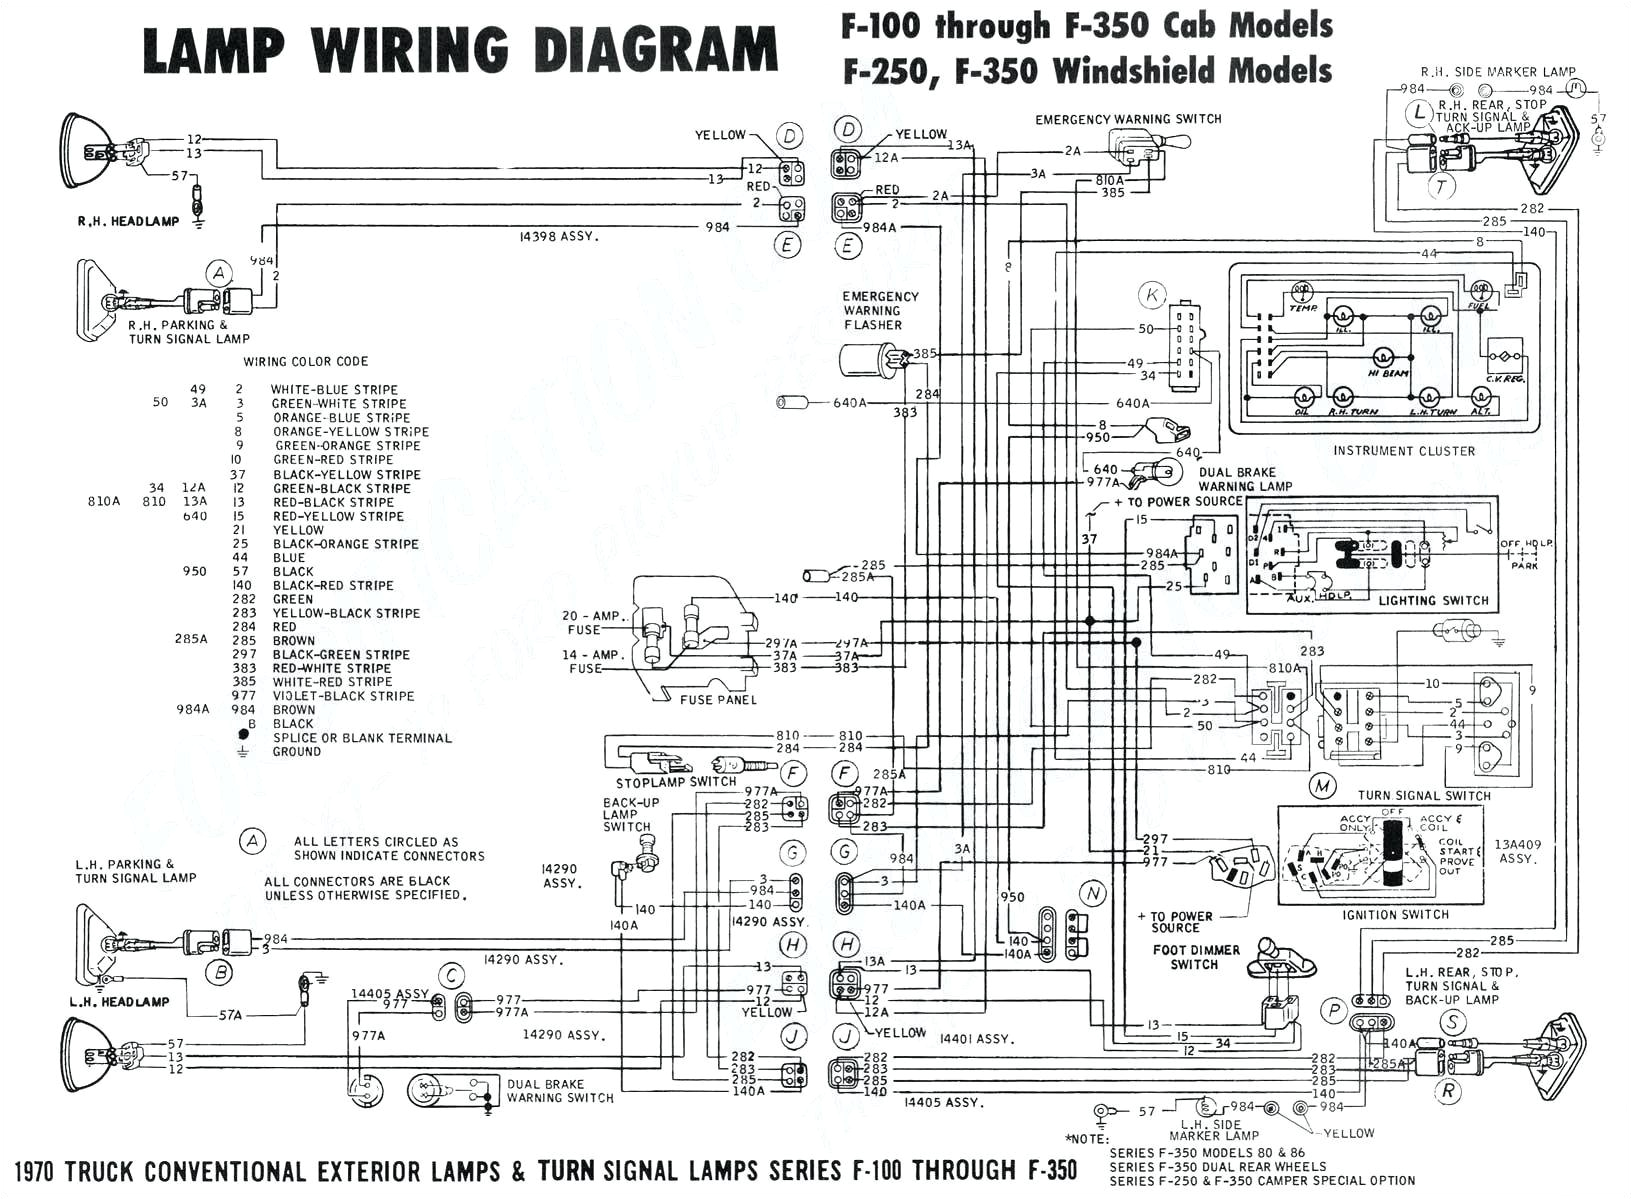 97 f150 tail light wiring harness electrical schematic wiring diagram 2004 f150 trailer light wiring harness